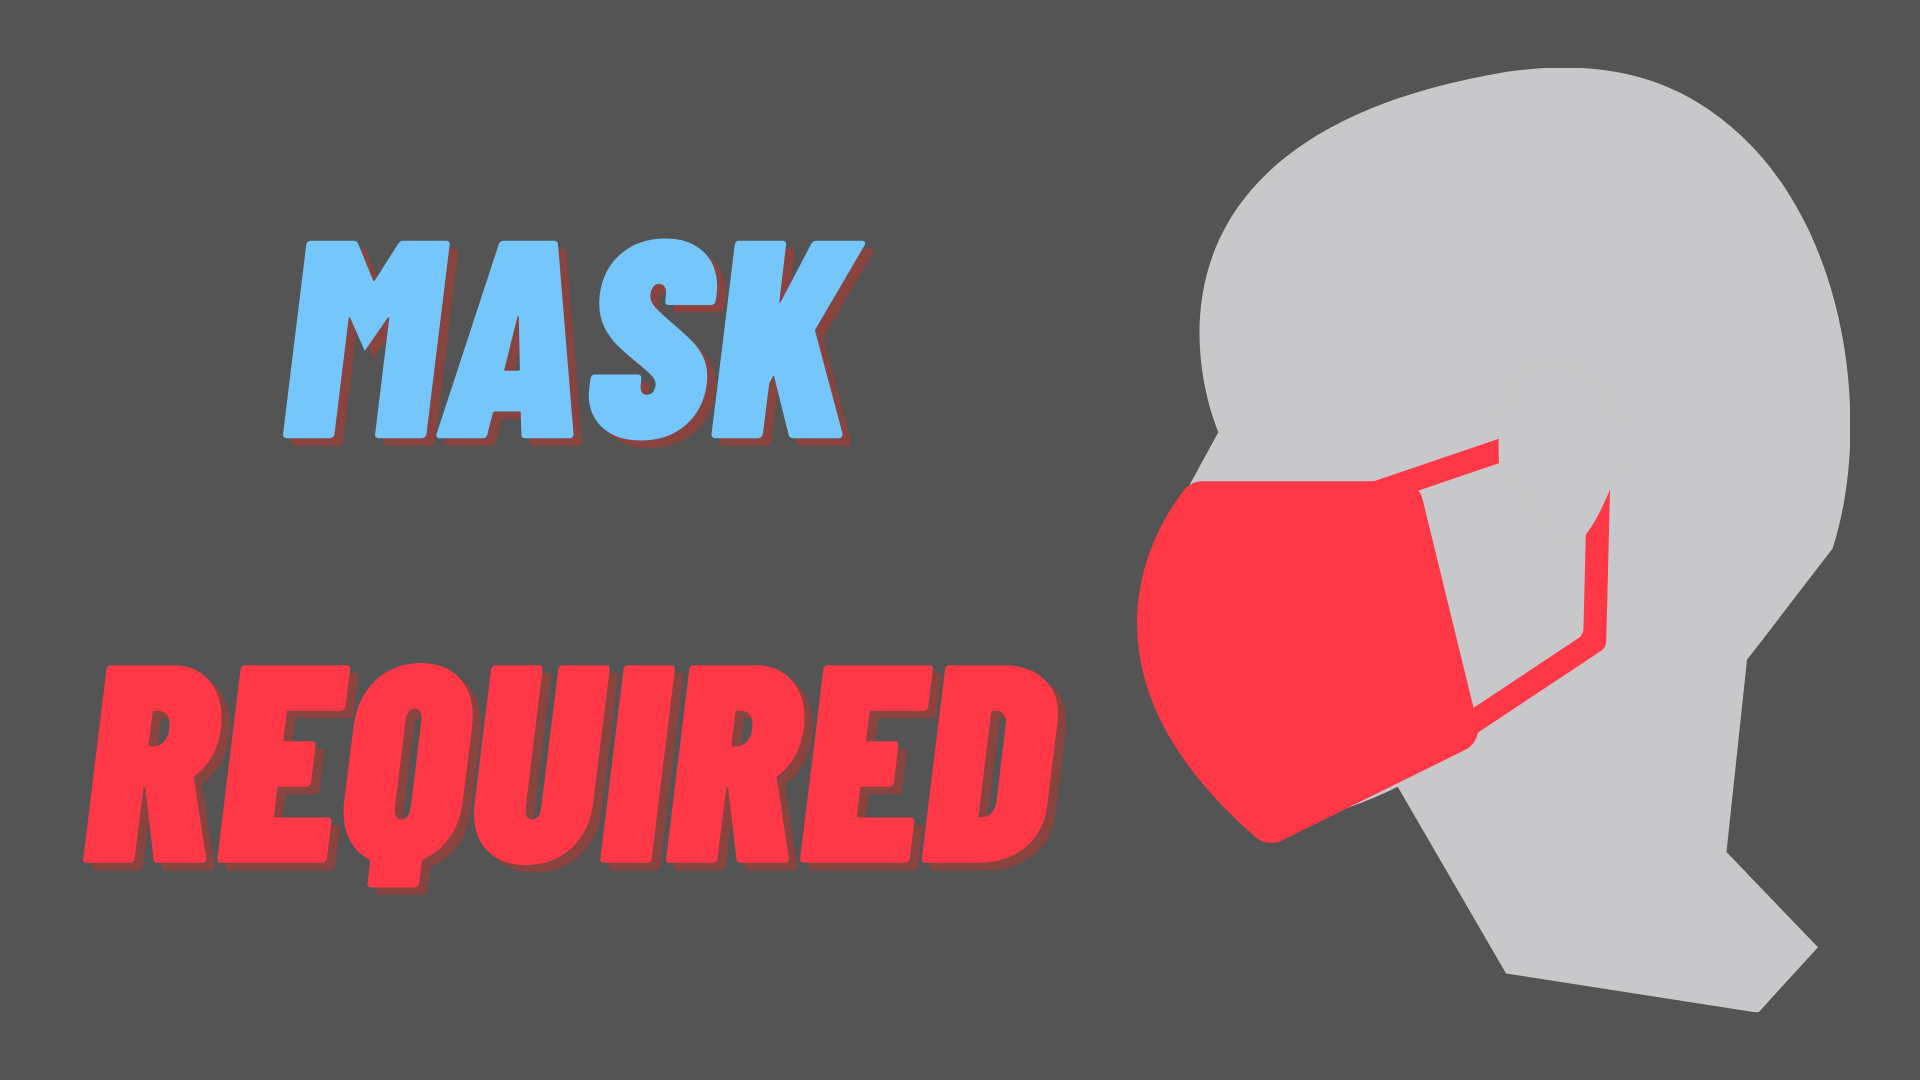 MASK REQUIRED (1)